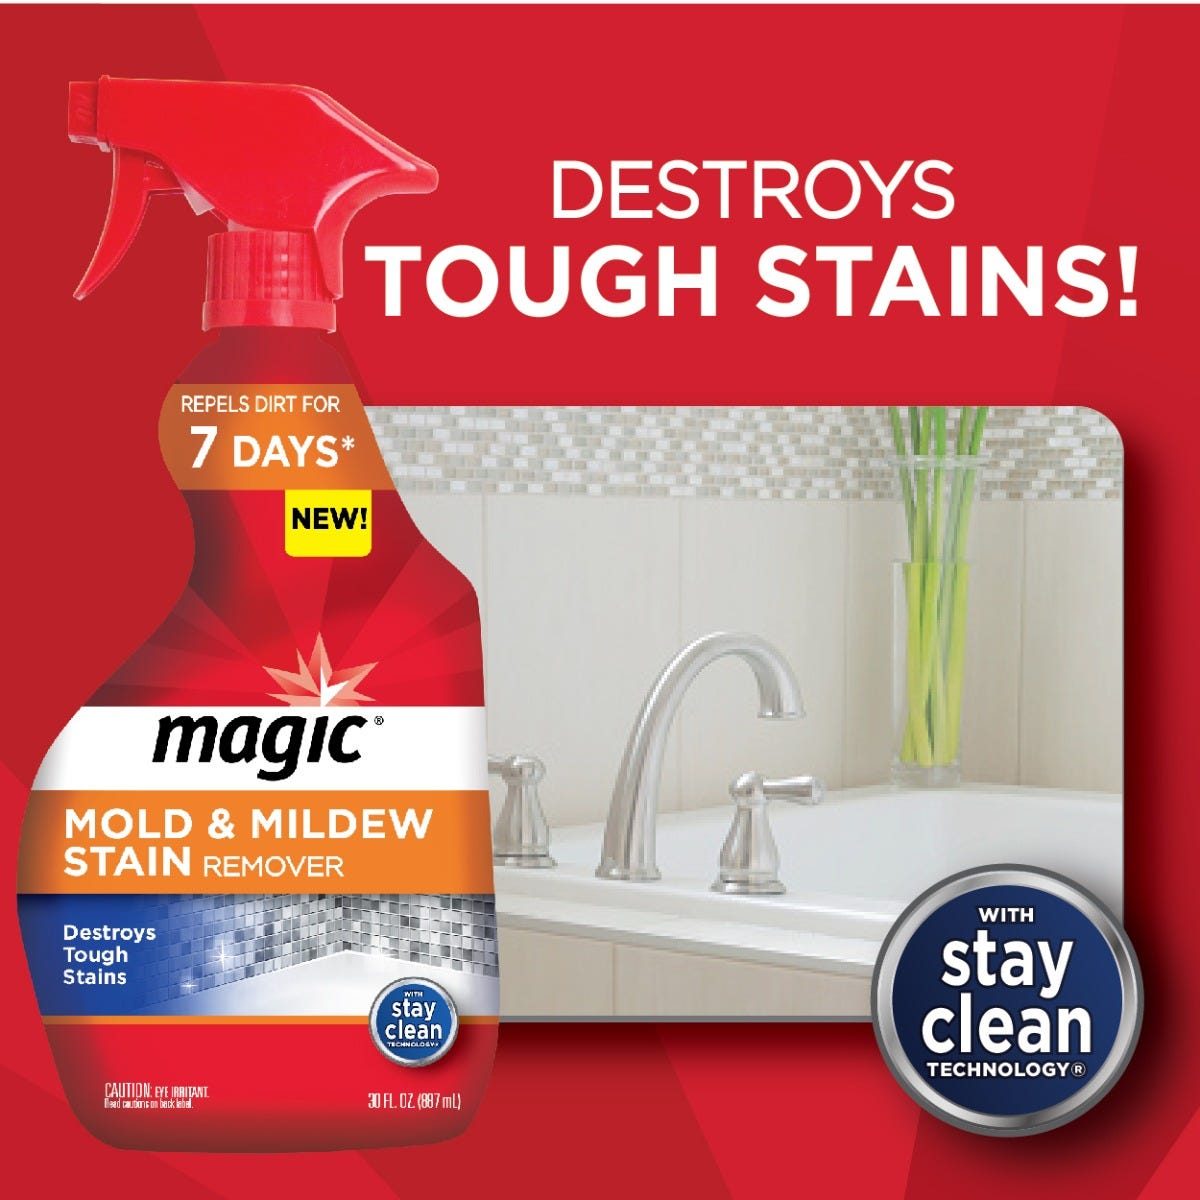 Magic Mold & Mildew Stain Remover